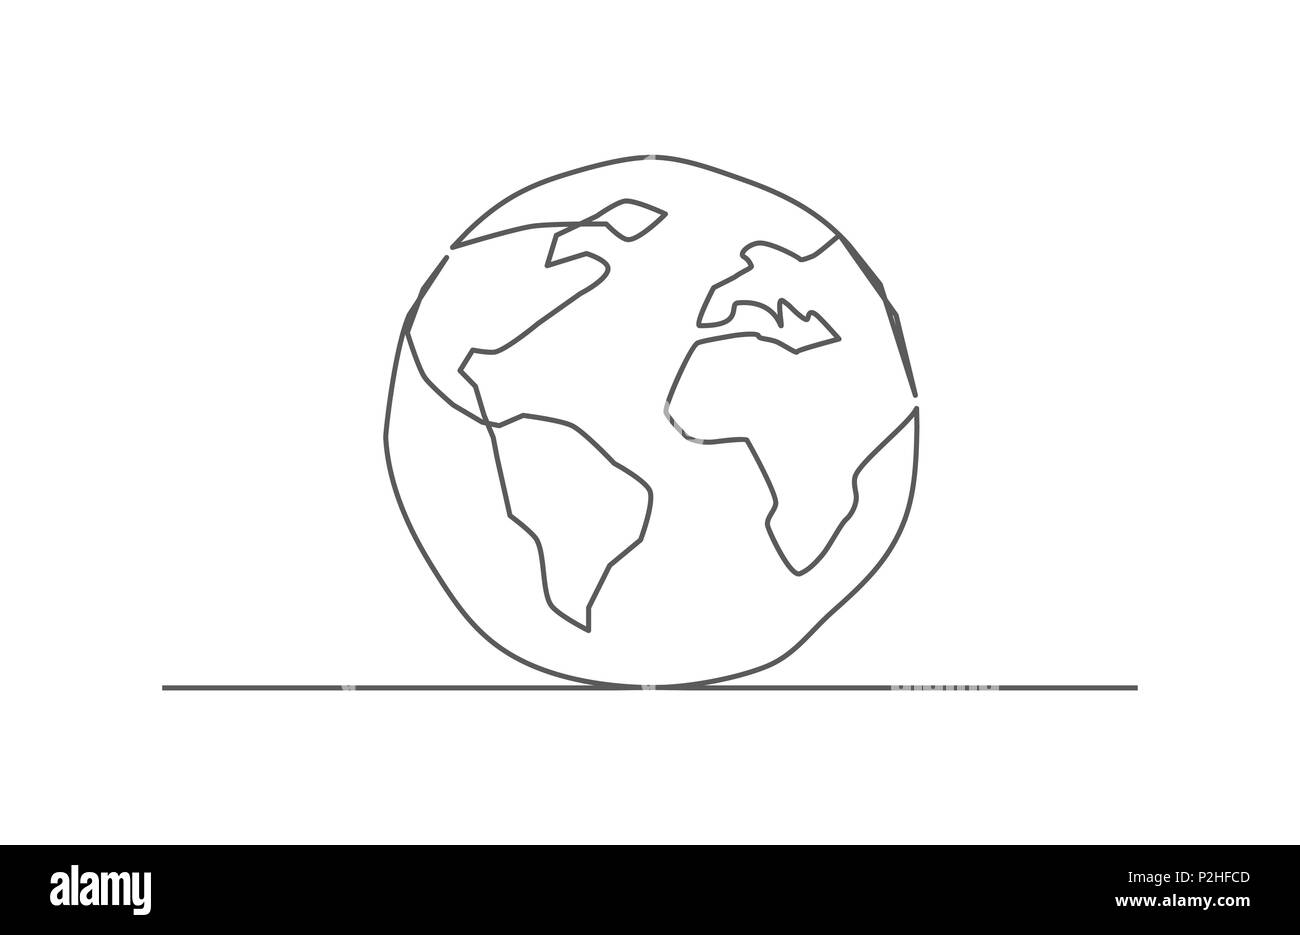 Line drawing world map stock photos line drawing world map stock globe one line drawing stock image gumiabroncs Gallery